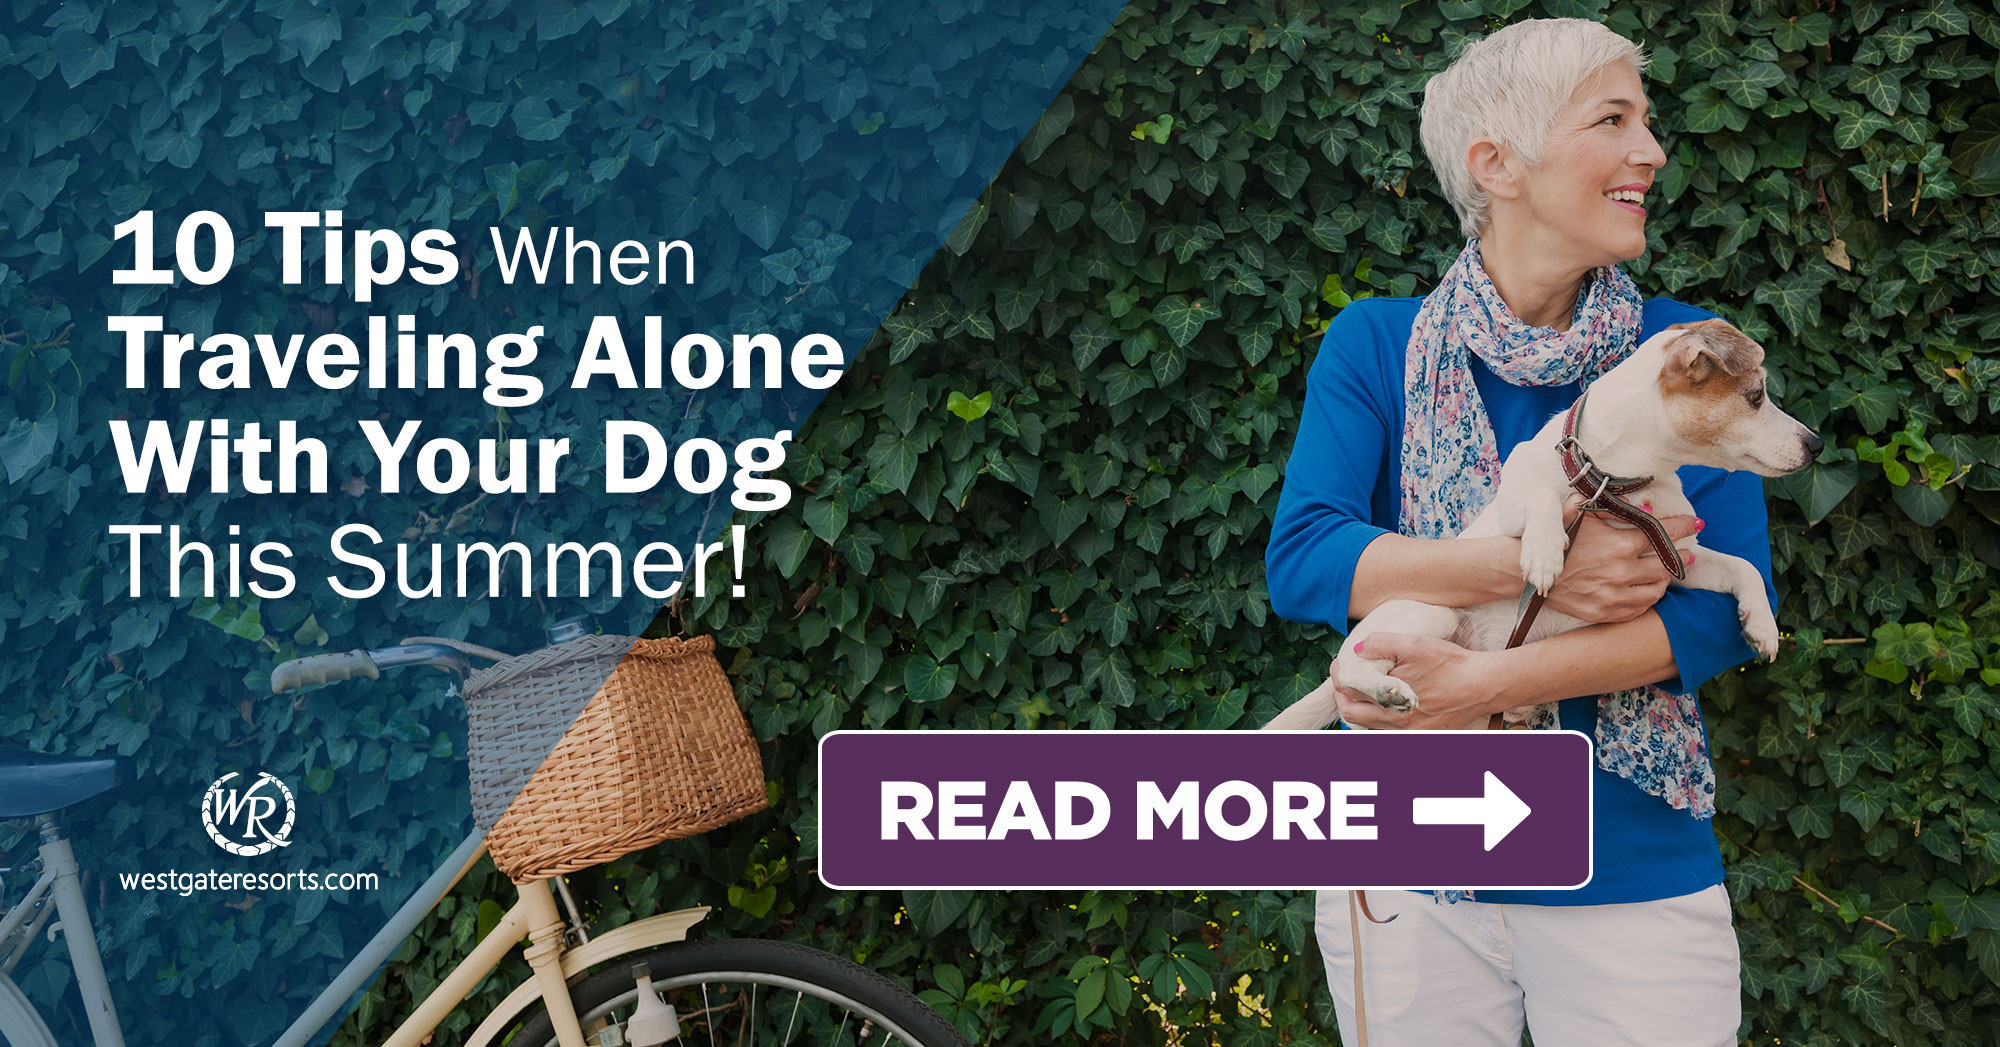 10 Tips When Traveling Alone With Your Dog This Summer | Dog-Friendly Travel Tips